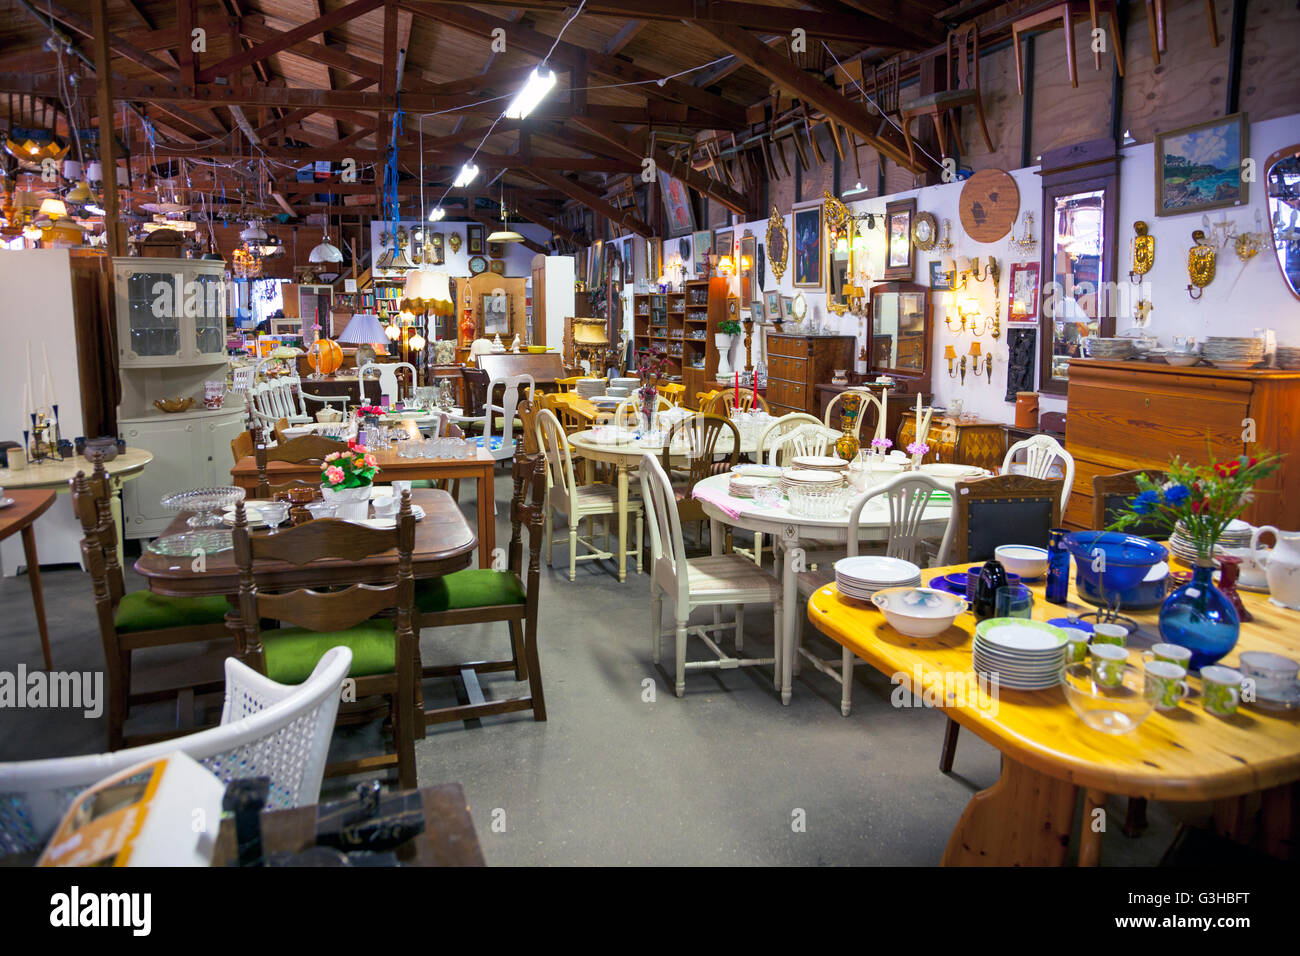 Second Hand Furniture Shops High Resolution Stock Photography And Images Alamy